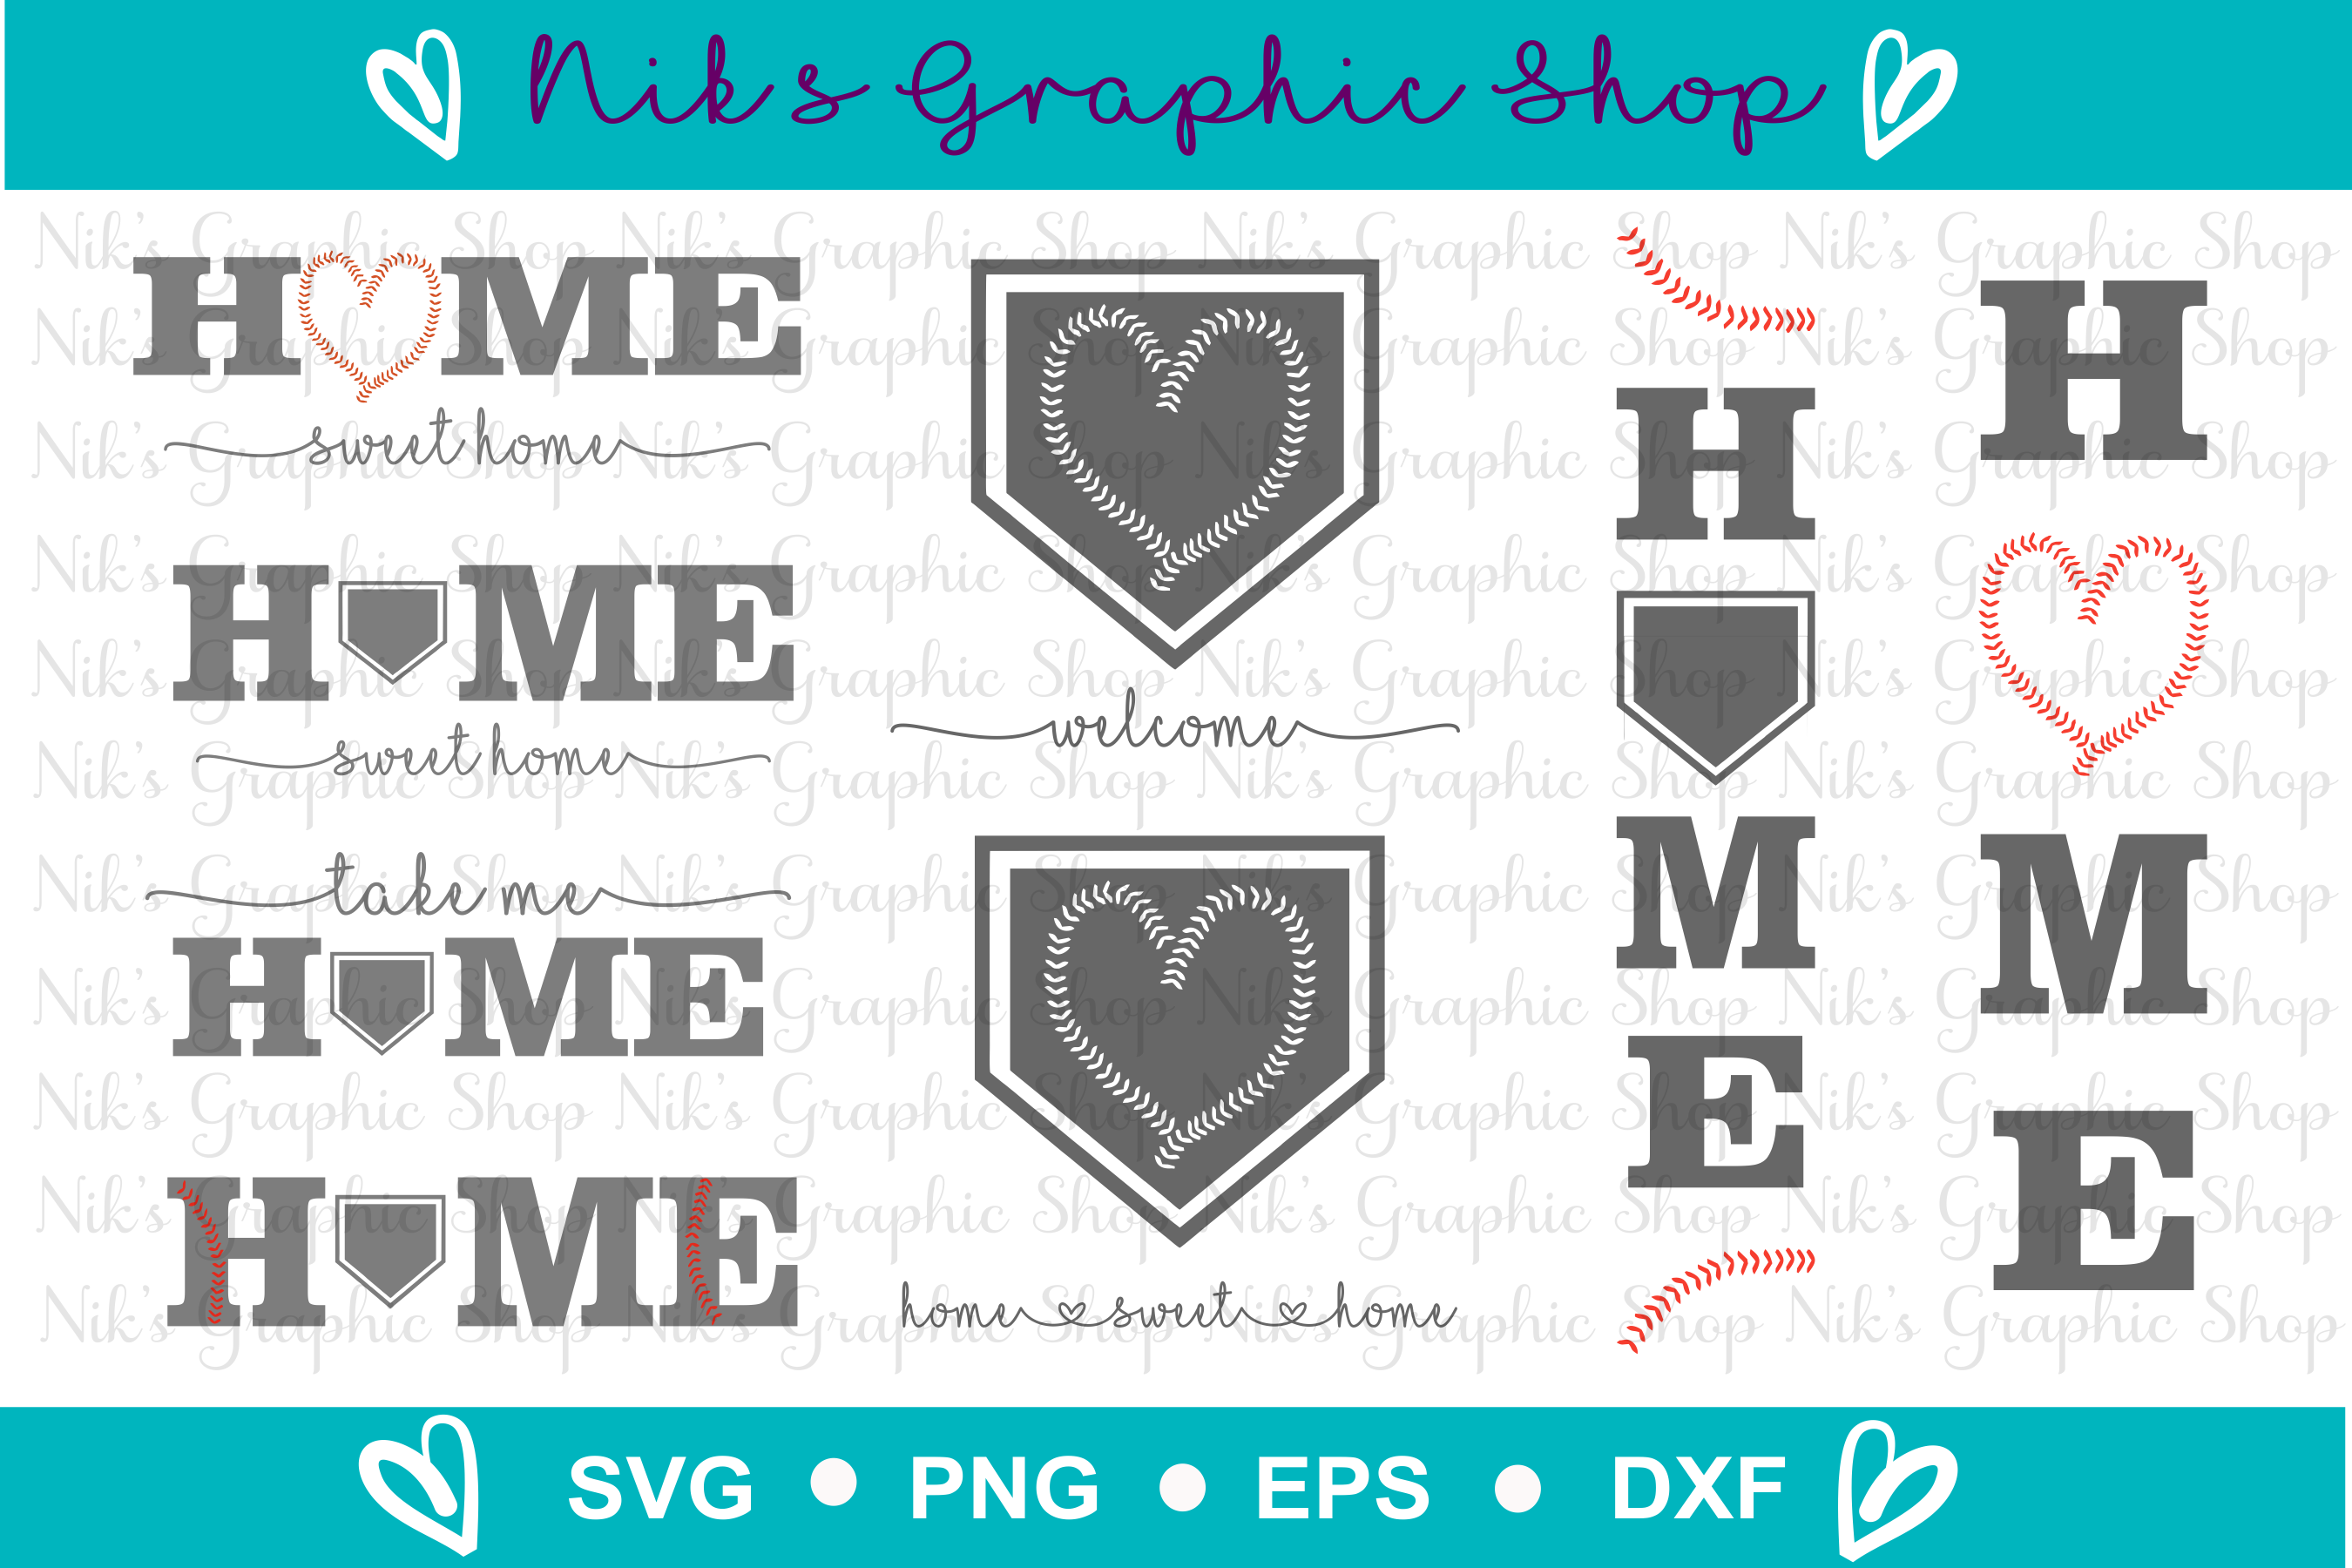 Baseball Svg, Home Sign Svg, Home Svg, Baseball Home Svg example image 1